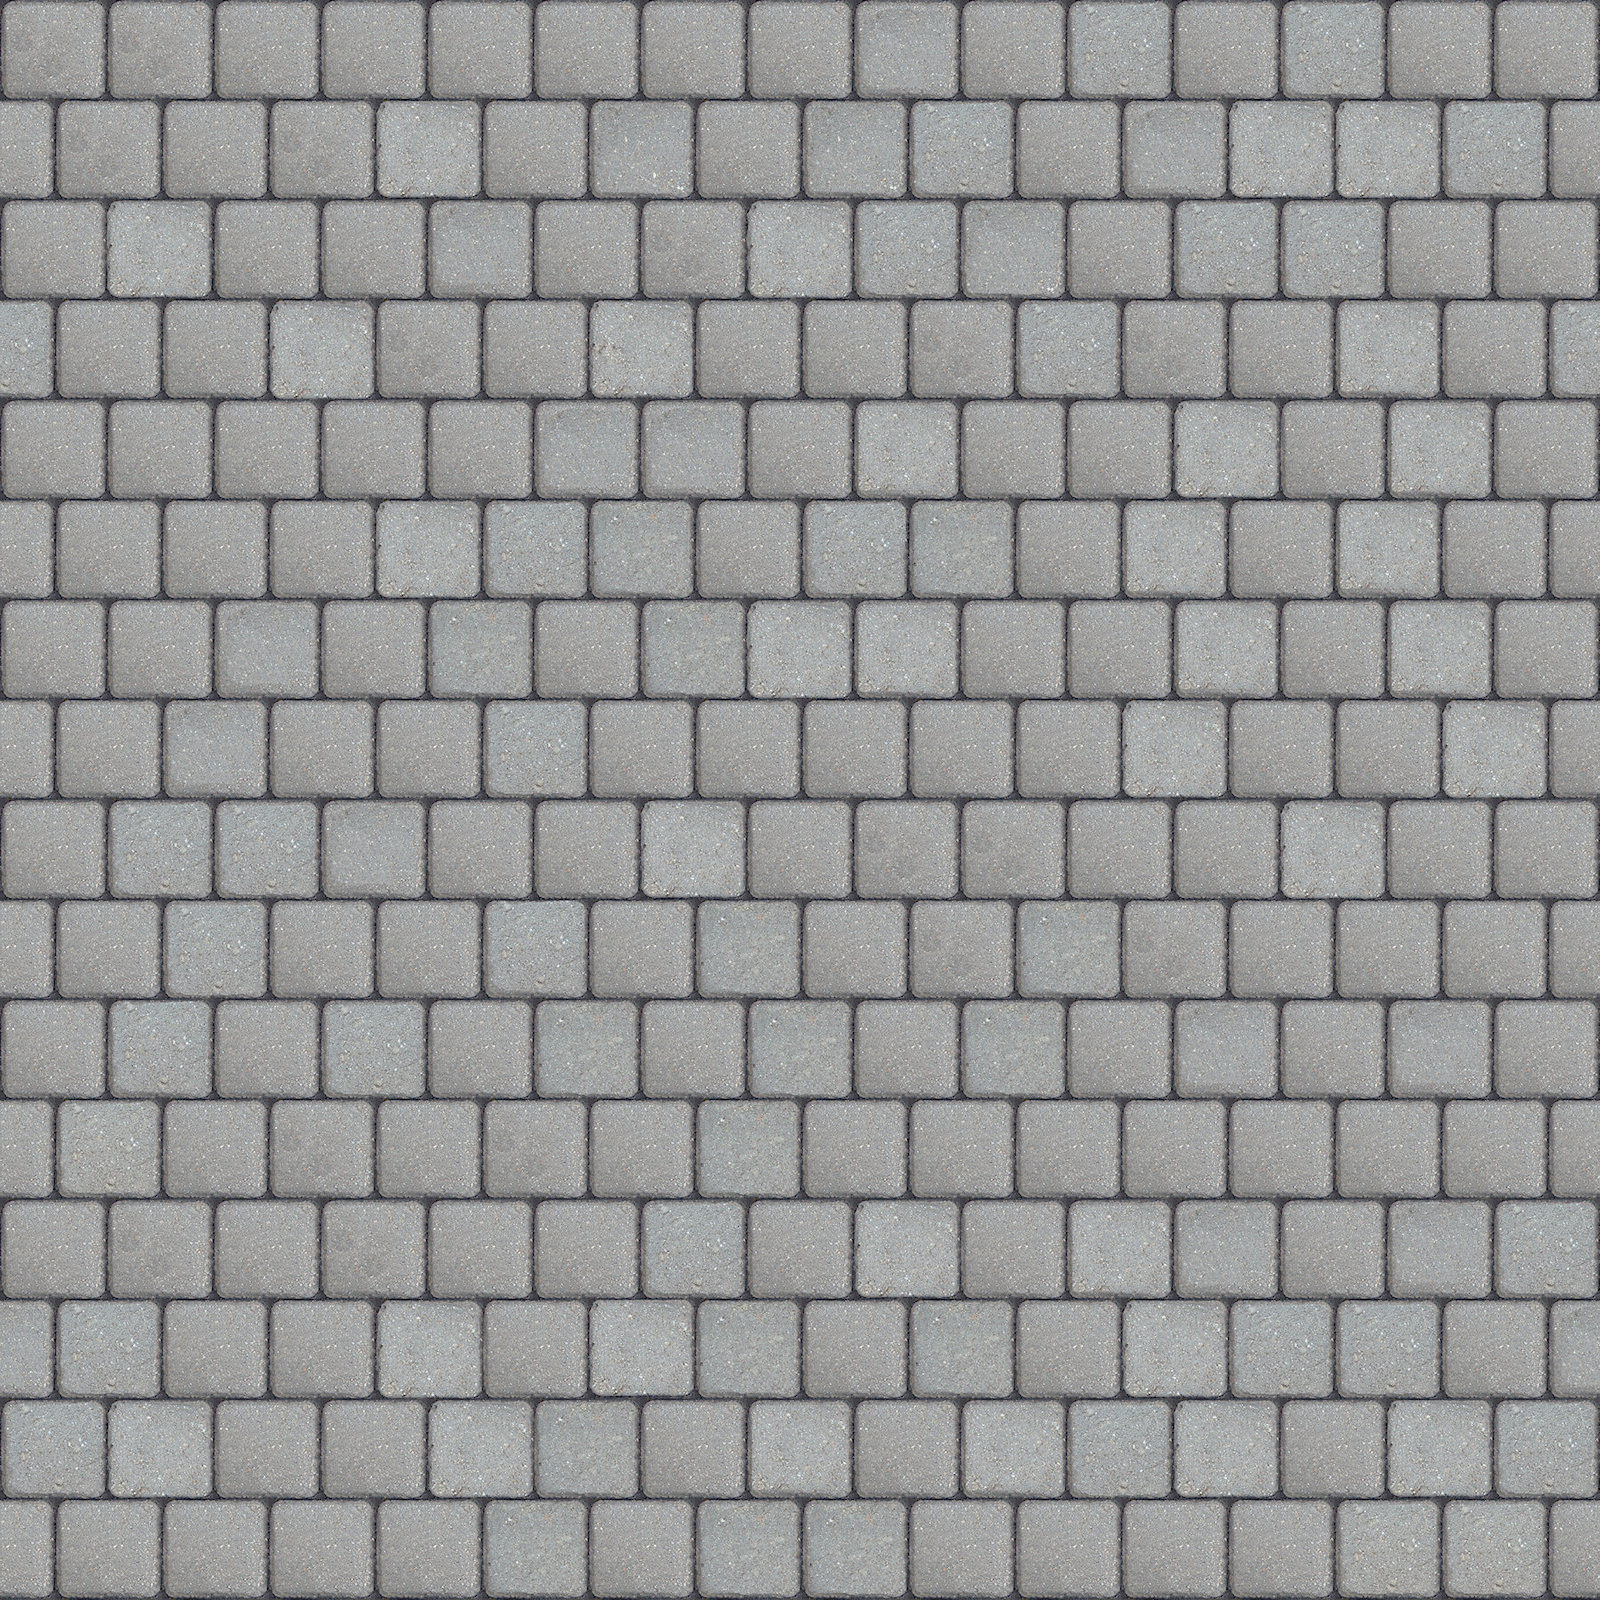 Natural Outdoor Stone Wall Tile